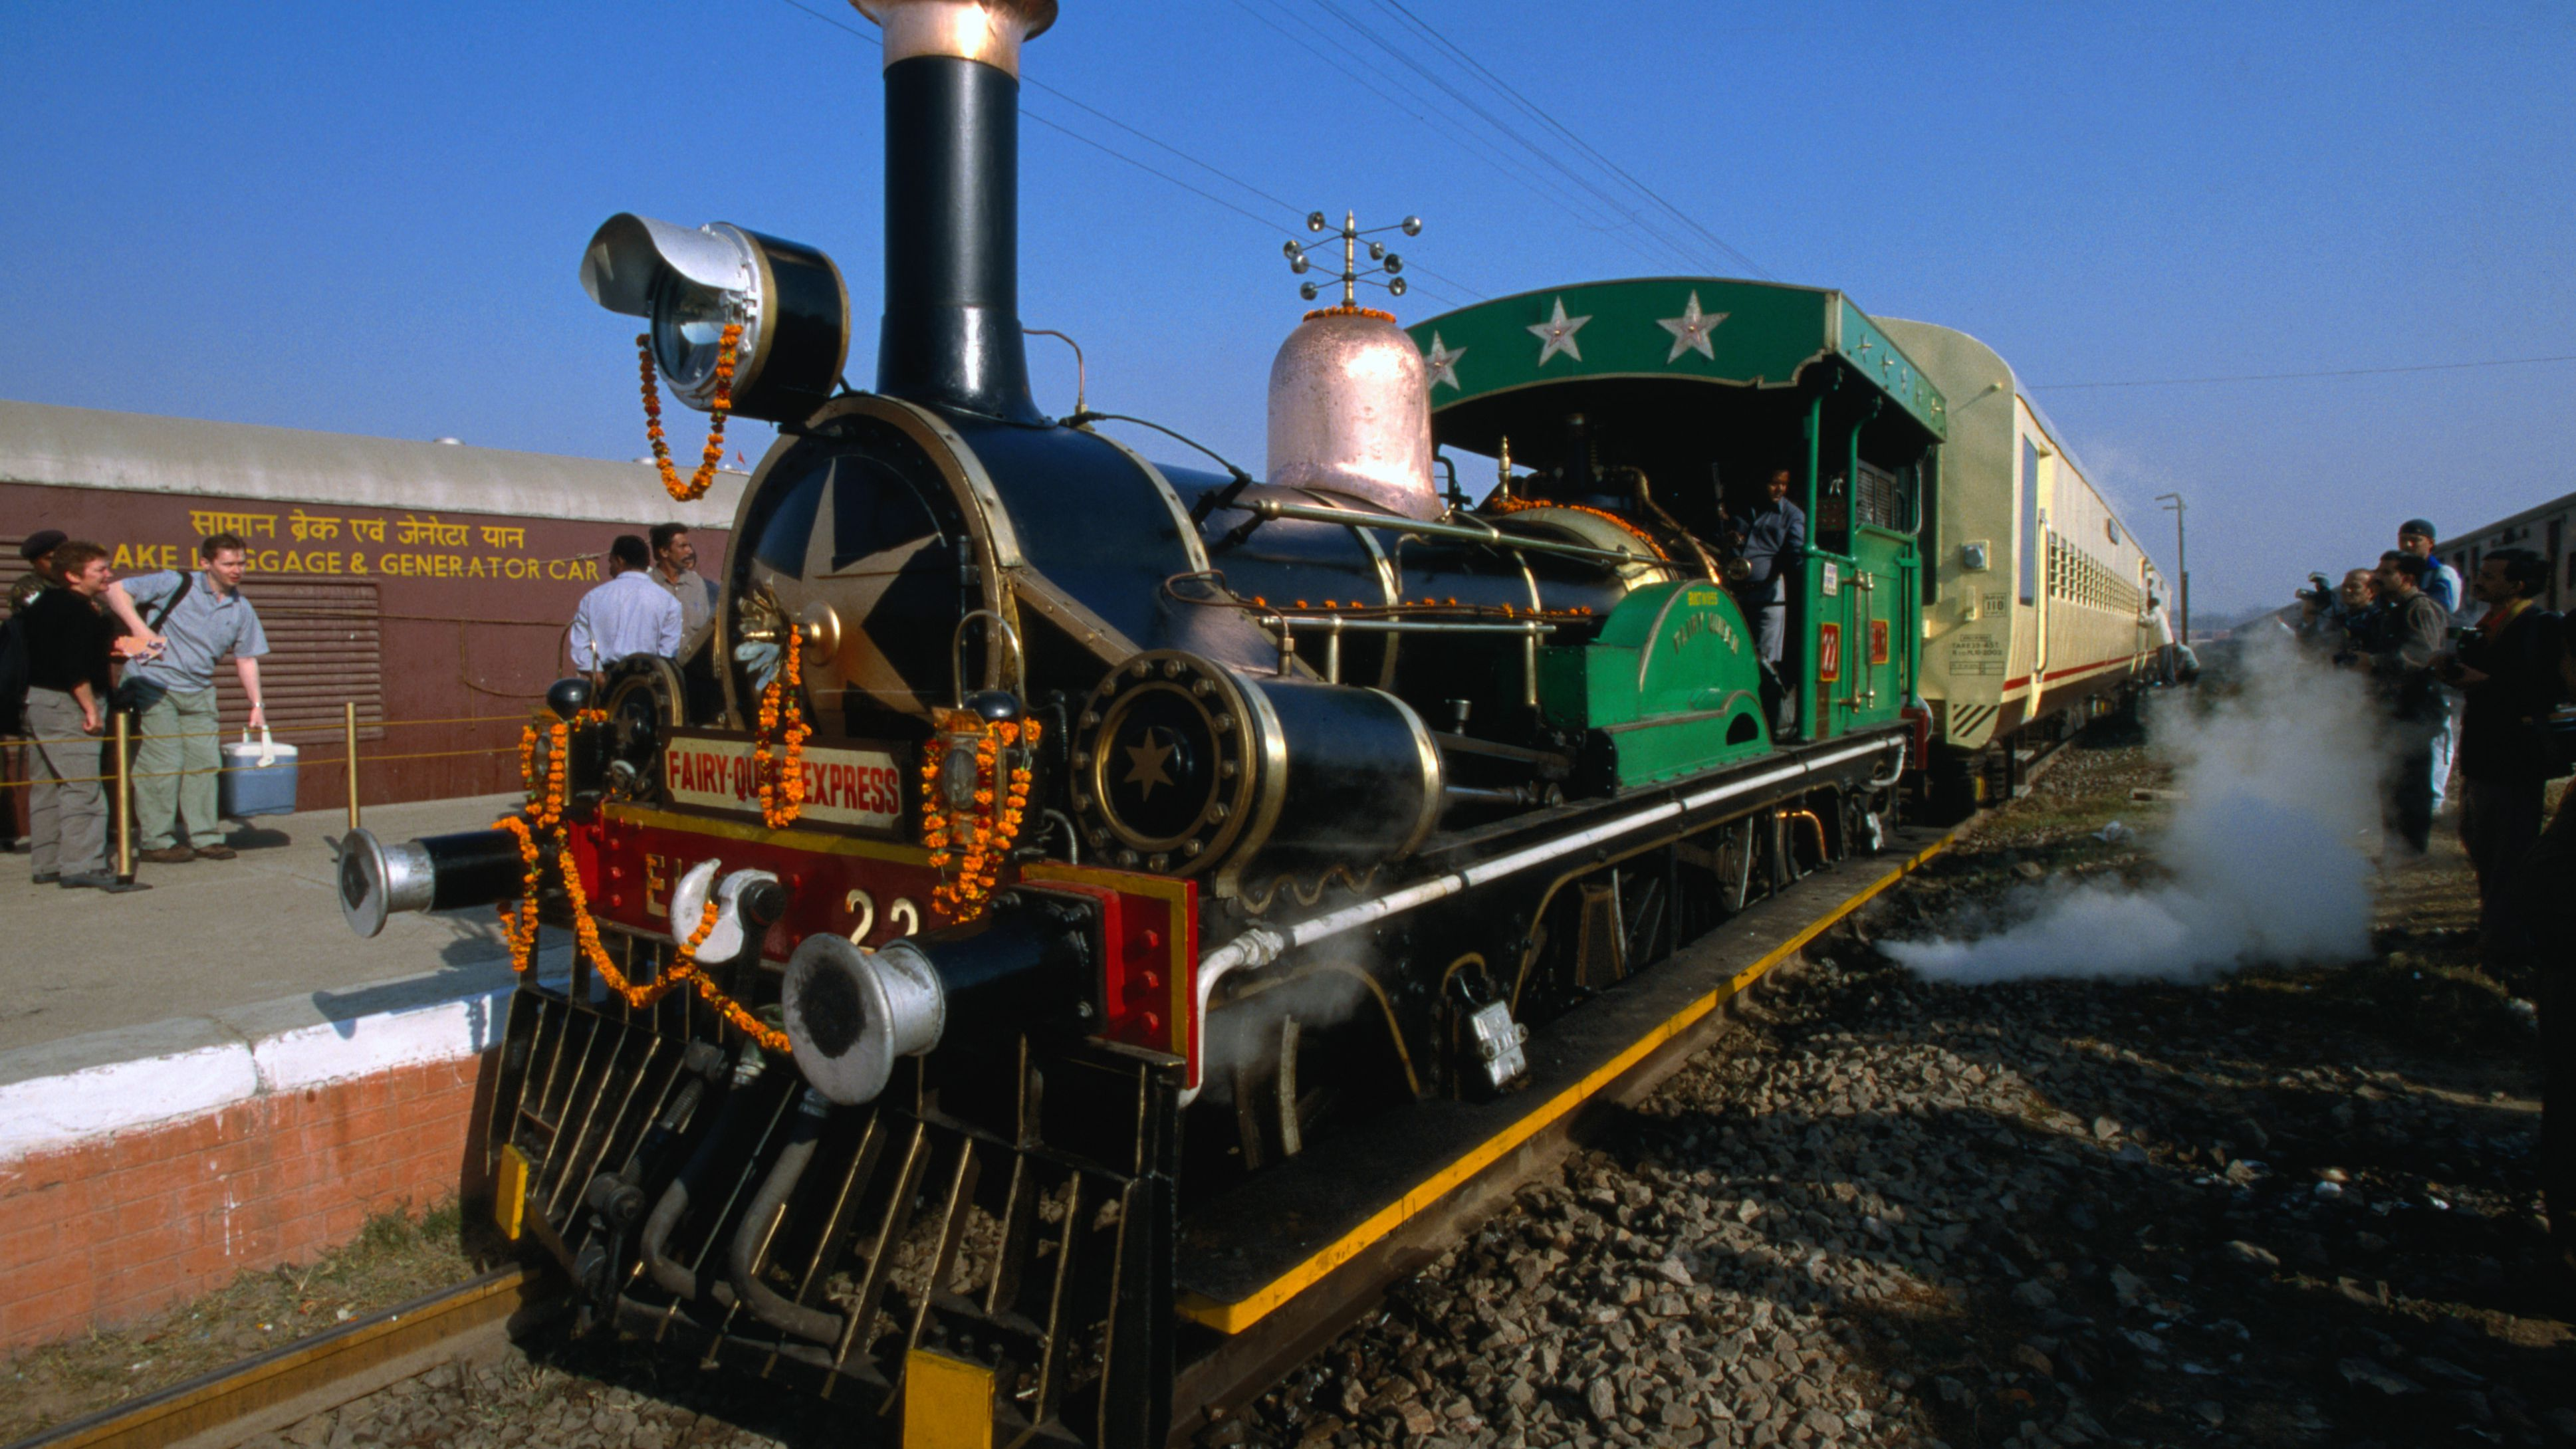 India's Steam Express (Fairy Queen) Train: Travel Guide